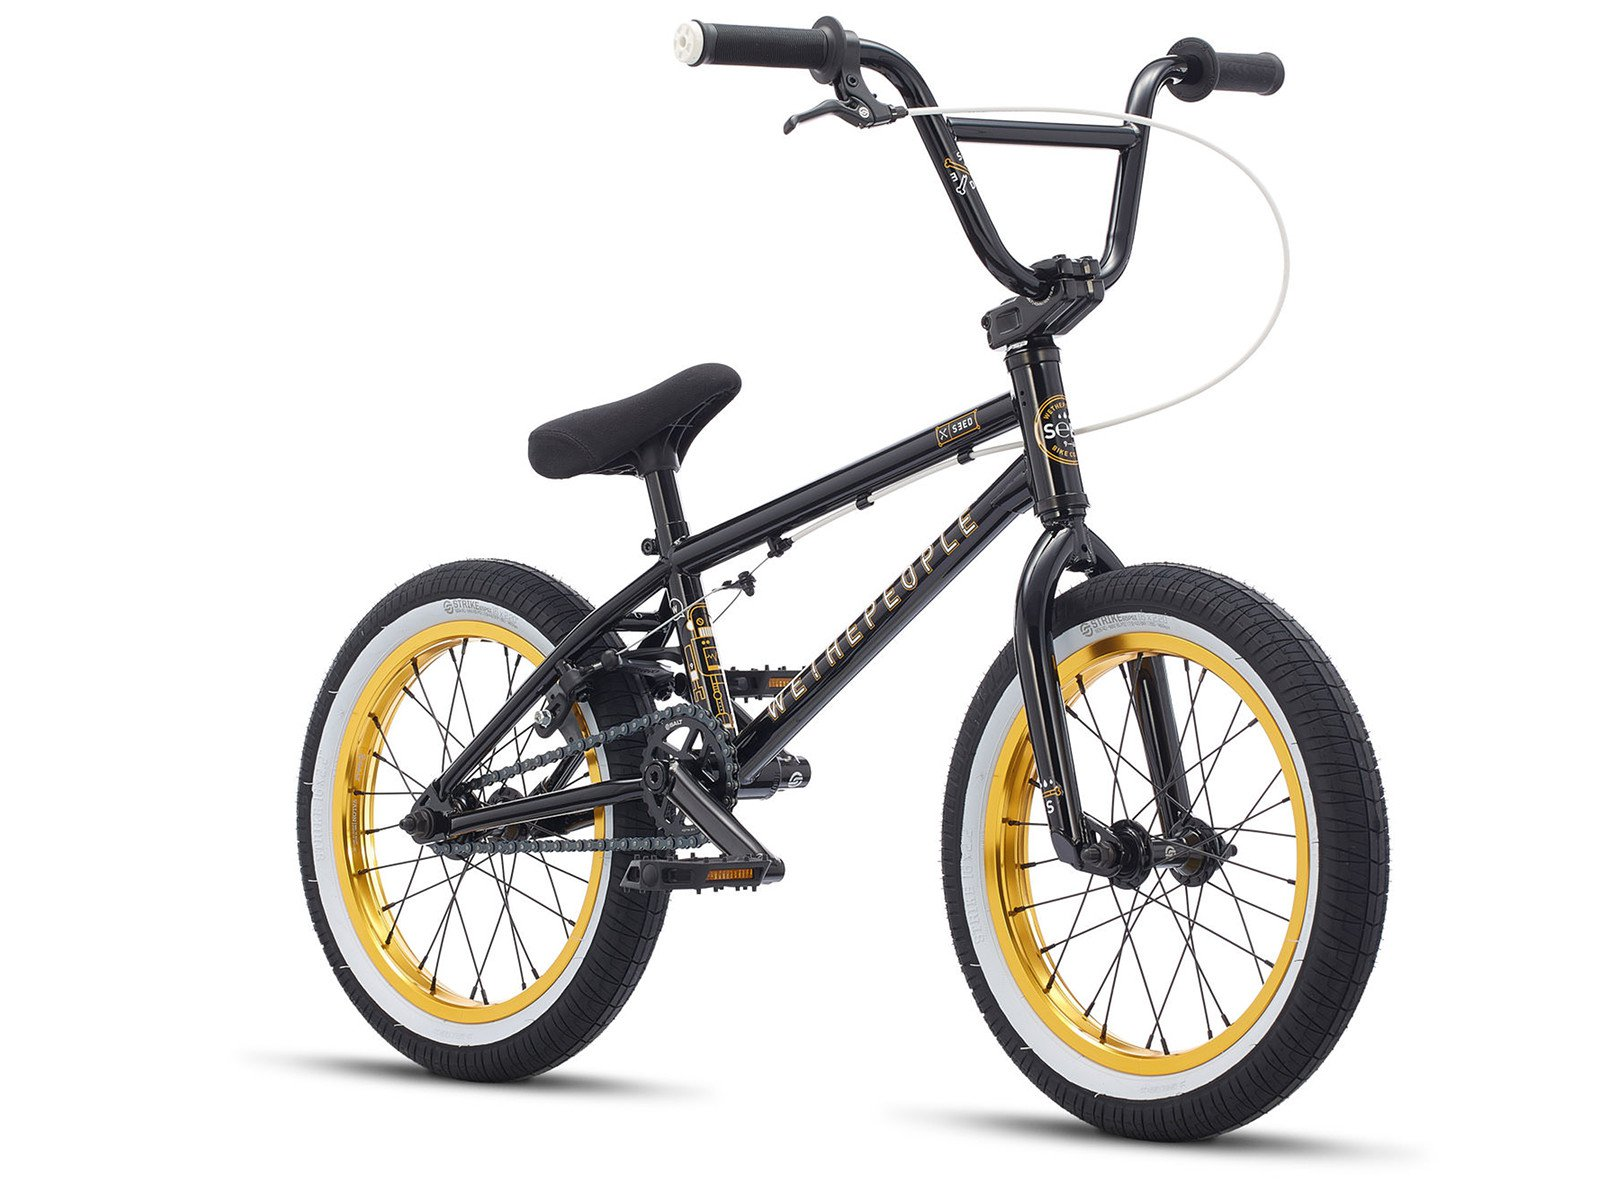 Wethepeople Quot Seed 16 Quot 2017 Bmx Bike 16 Inch Glossy